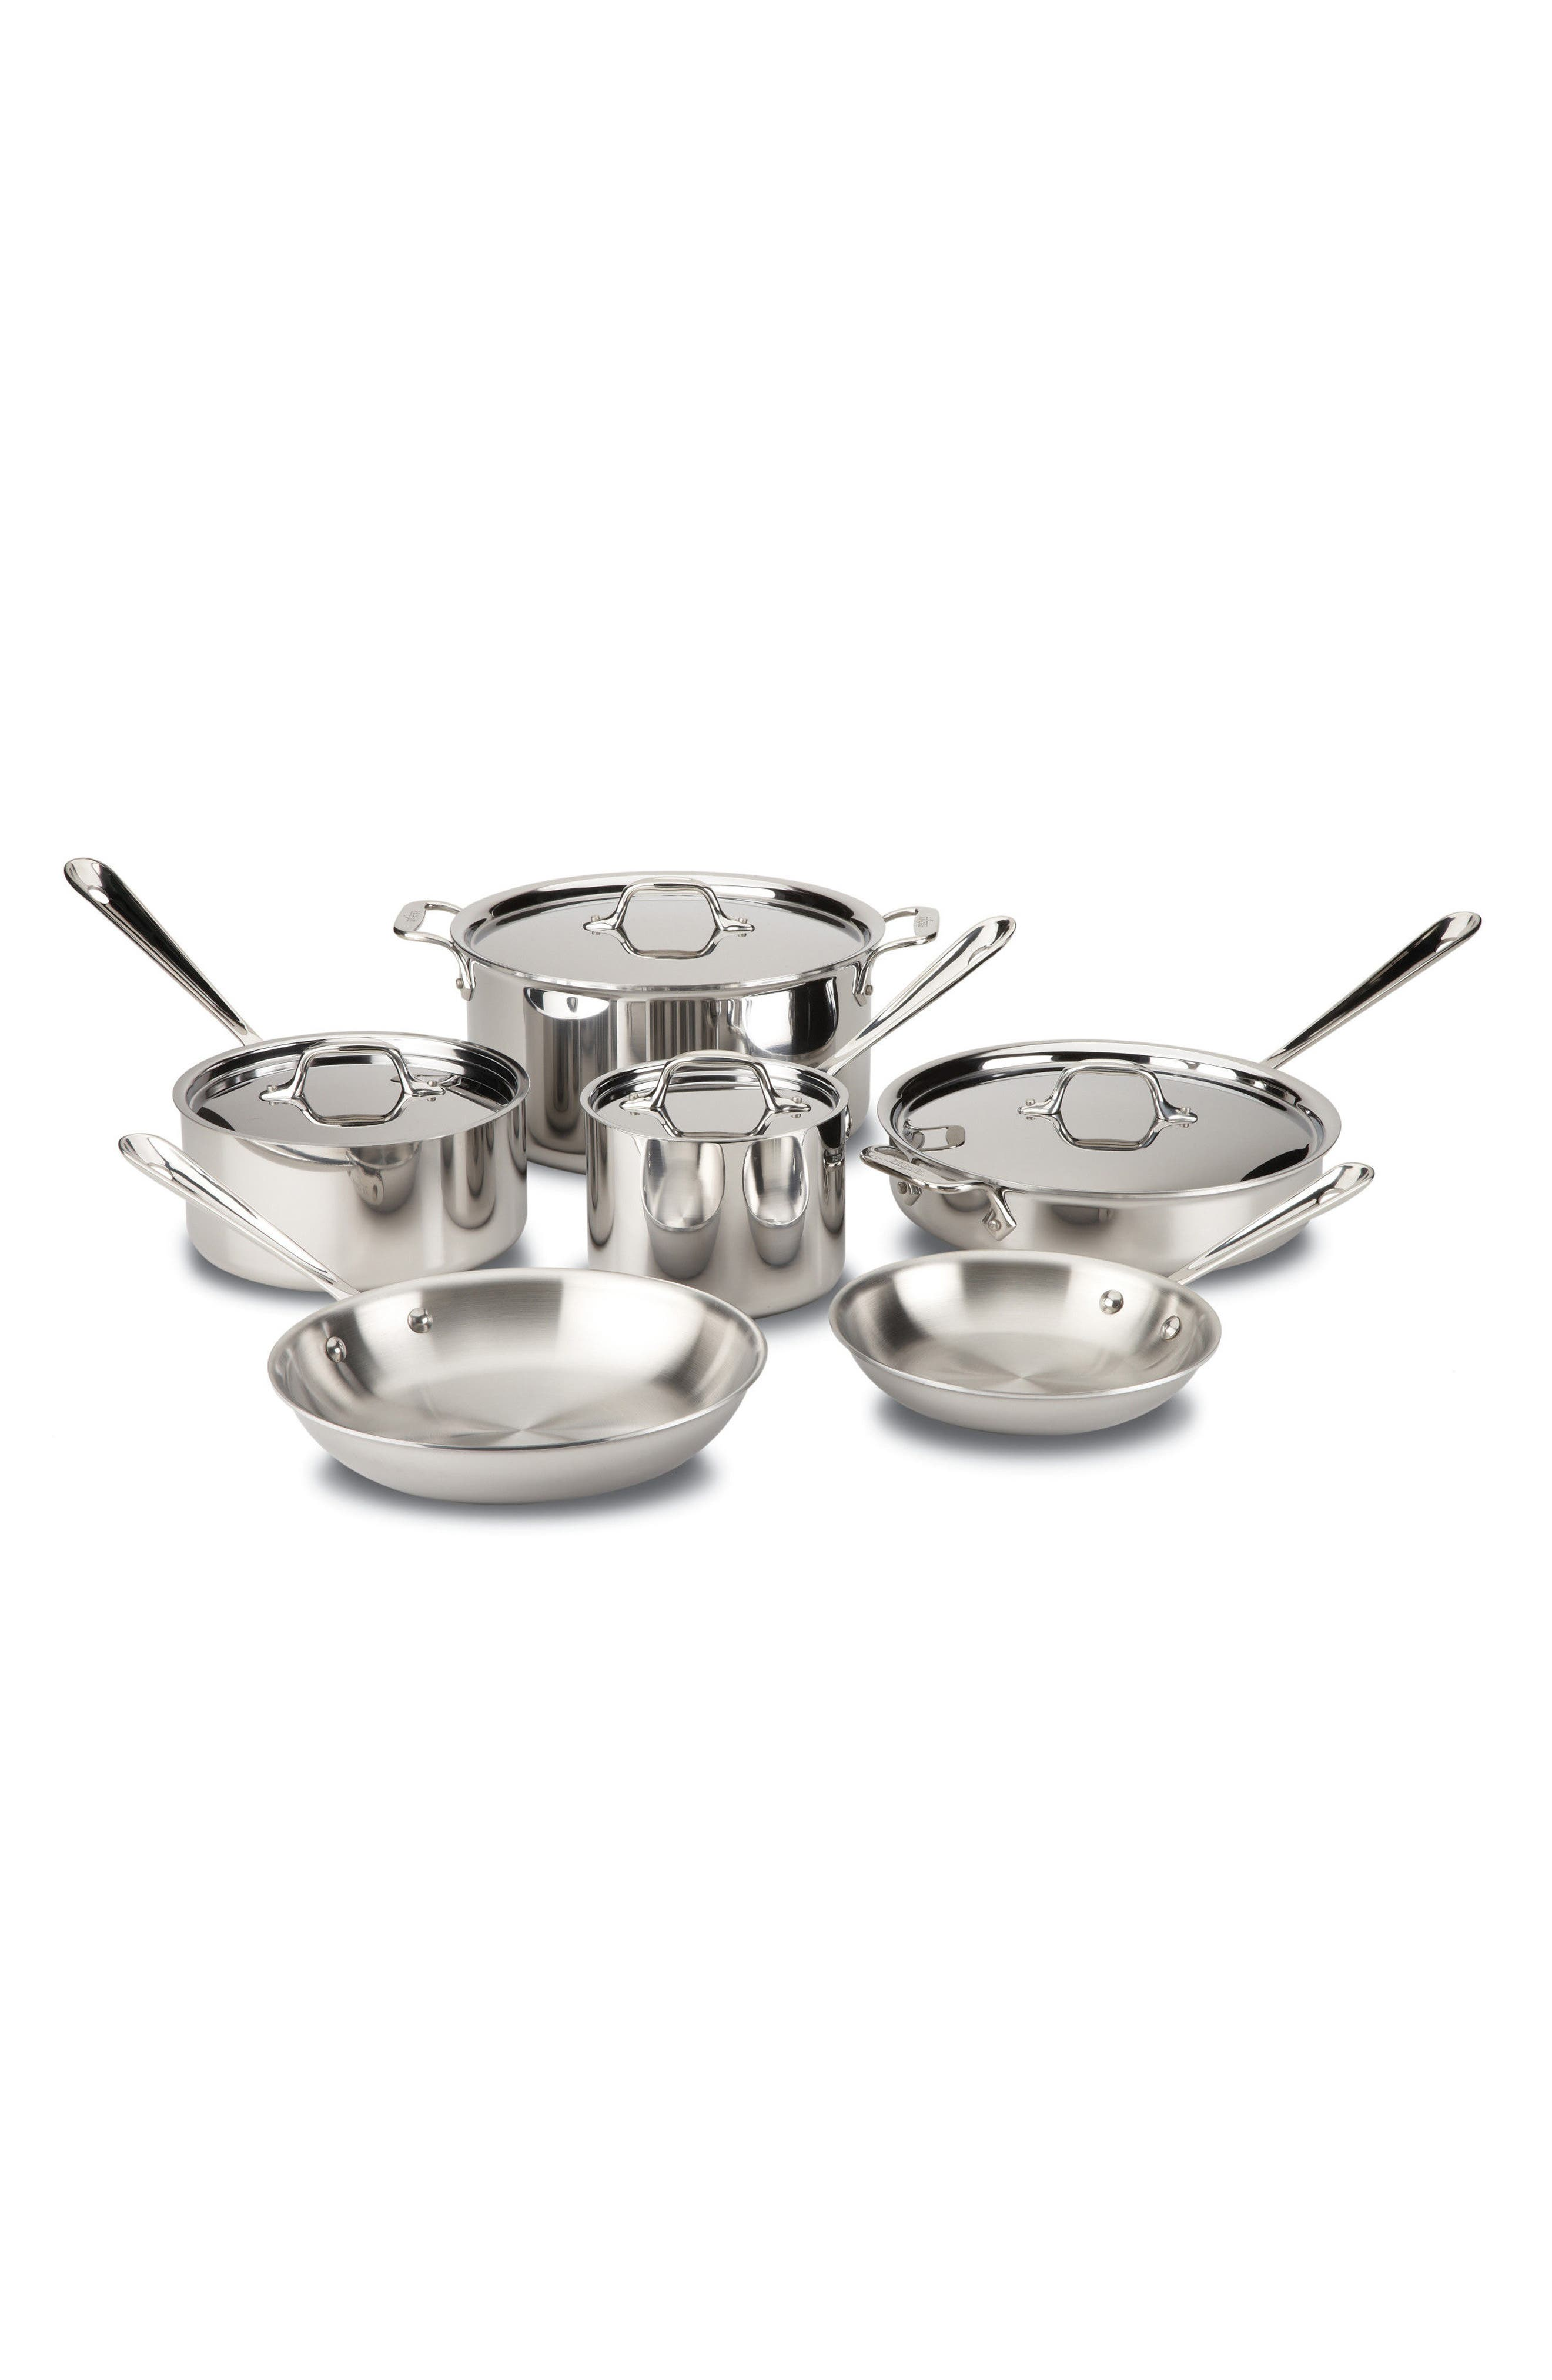 Main Image - All-Clad 10-Piece Stainless Steel Cookware Set